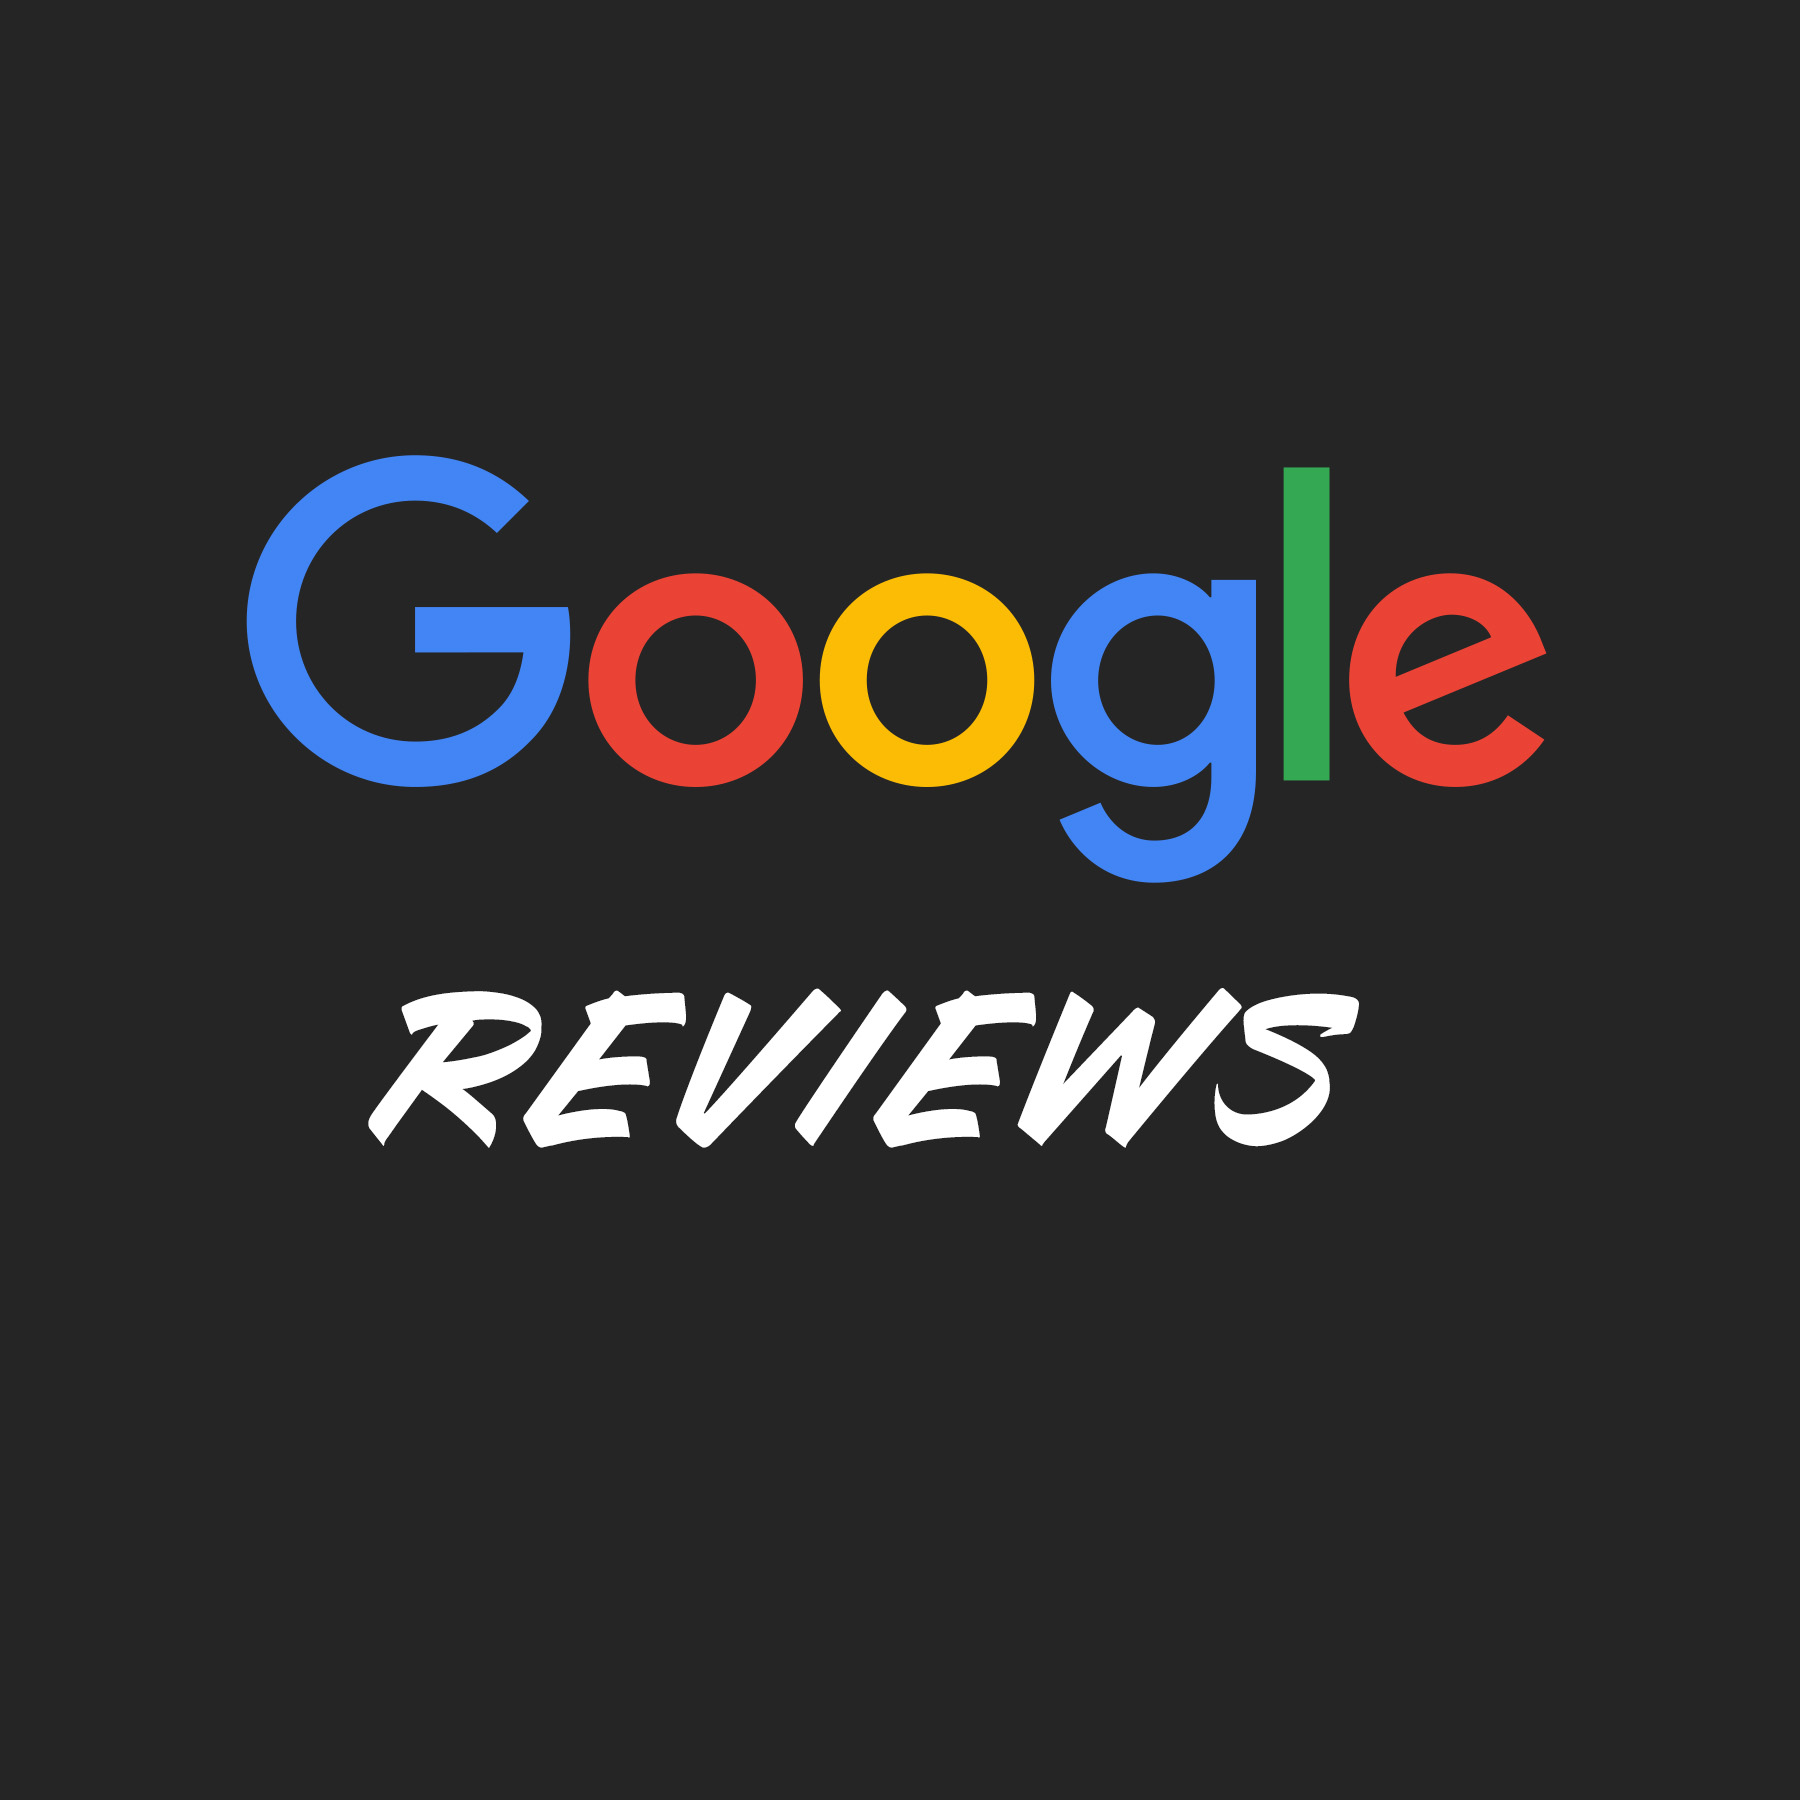 Google Reviews Thumbnail.jpg